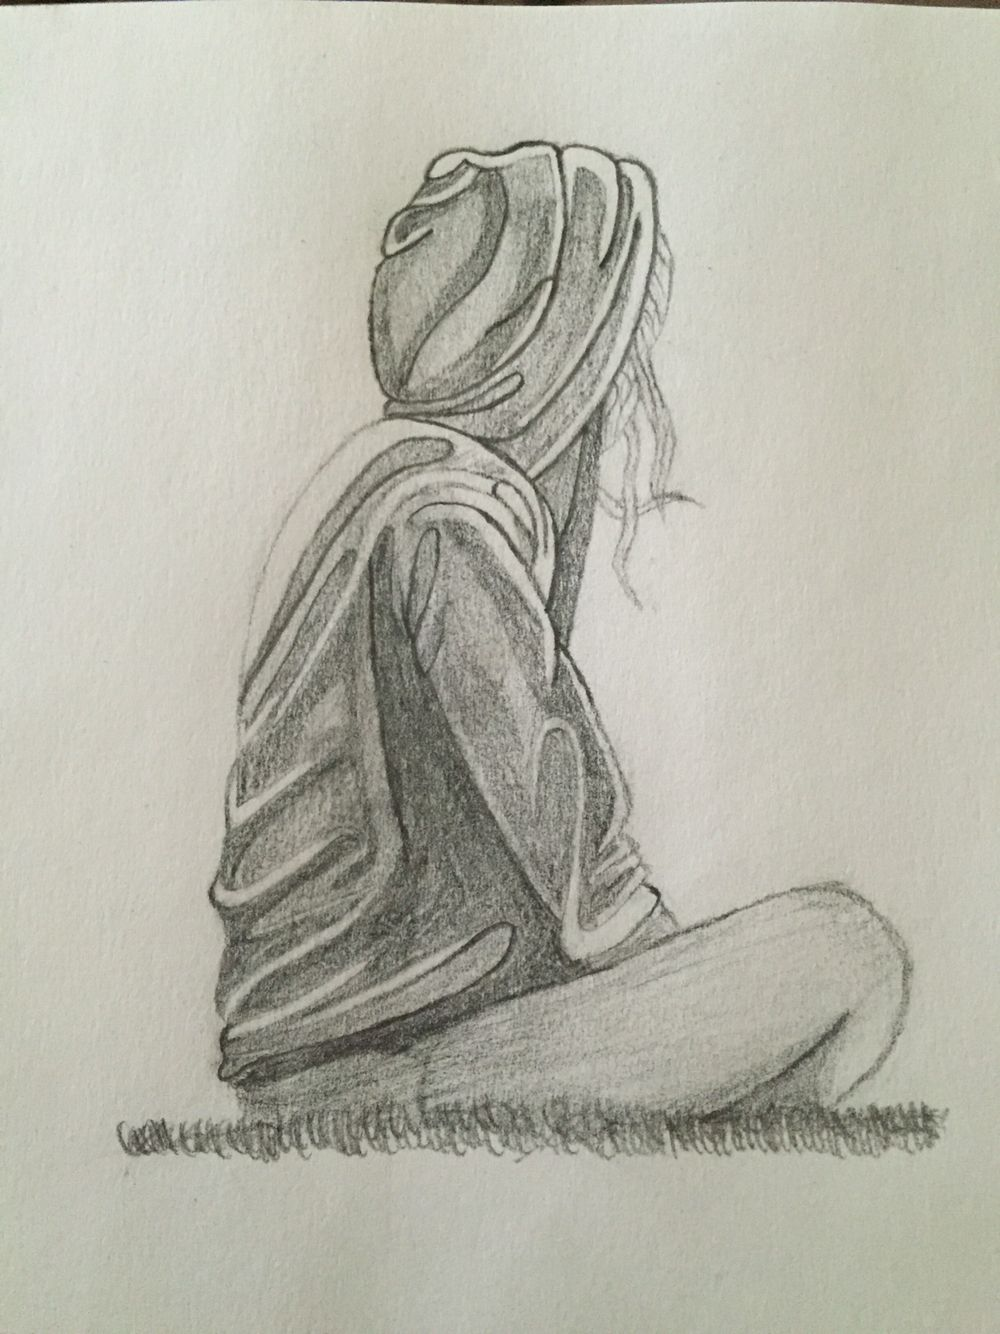 1000x1334 Depression Sketch Sketches Drawings, Sketches And Art - Sad Girl Sketch